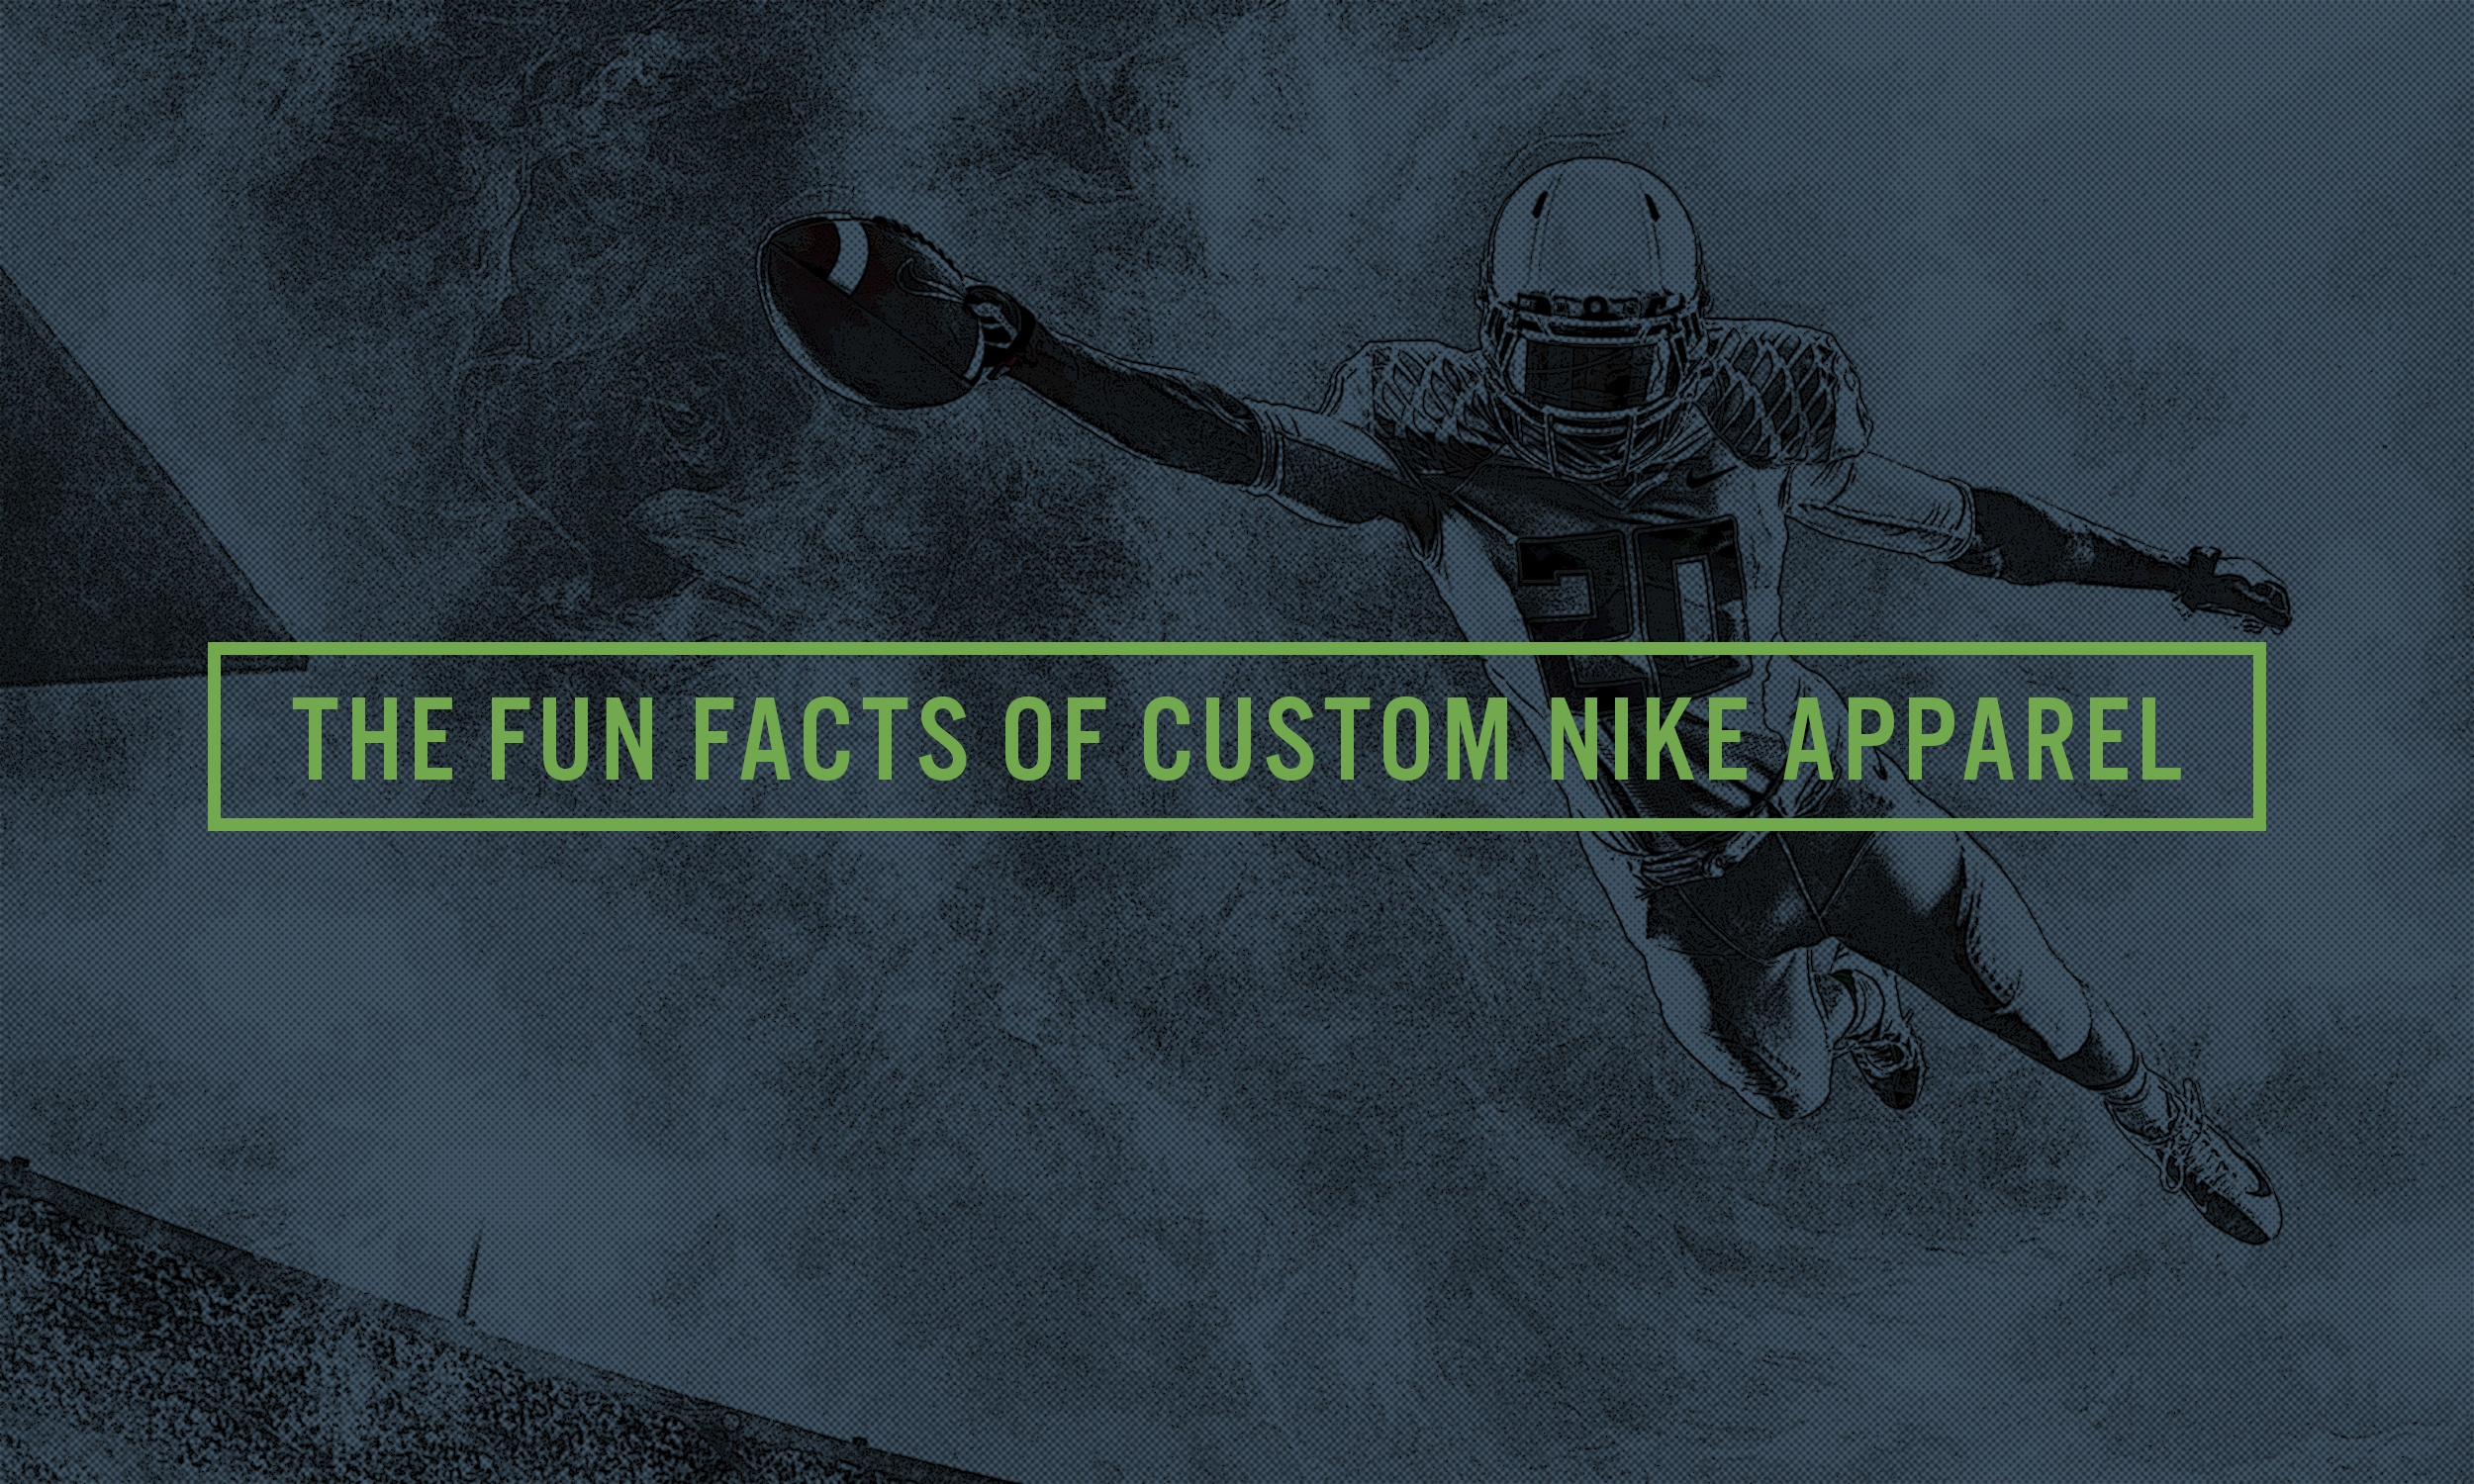 The Fun Facts of Custom Nike Apparel